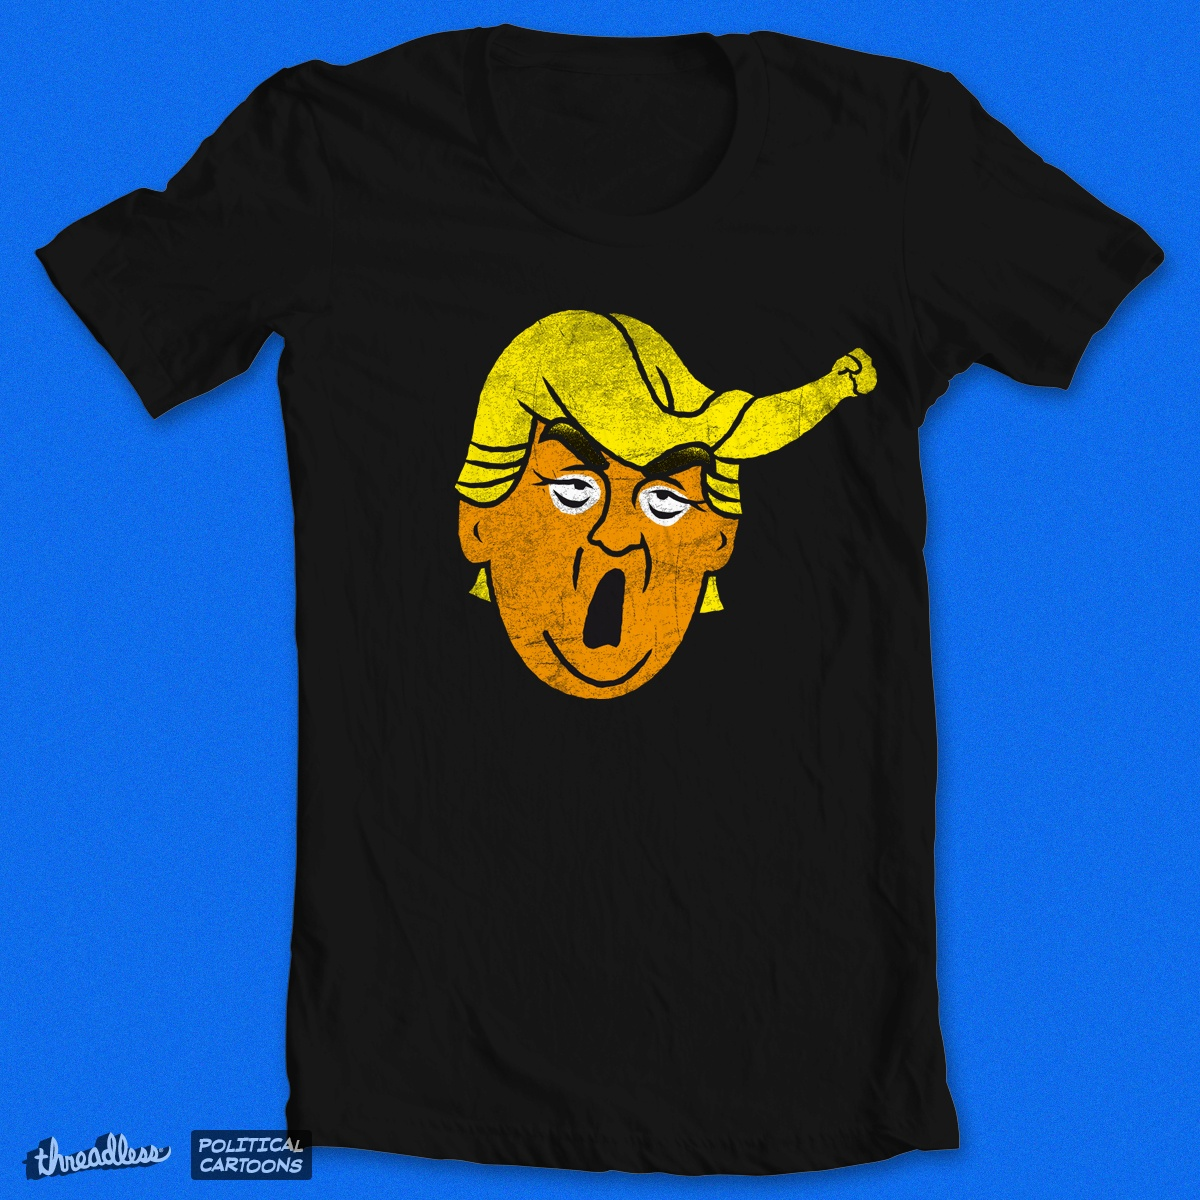 Hate is in the Hair, a cool t-shirt design